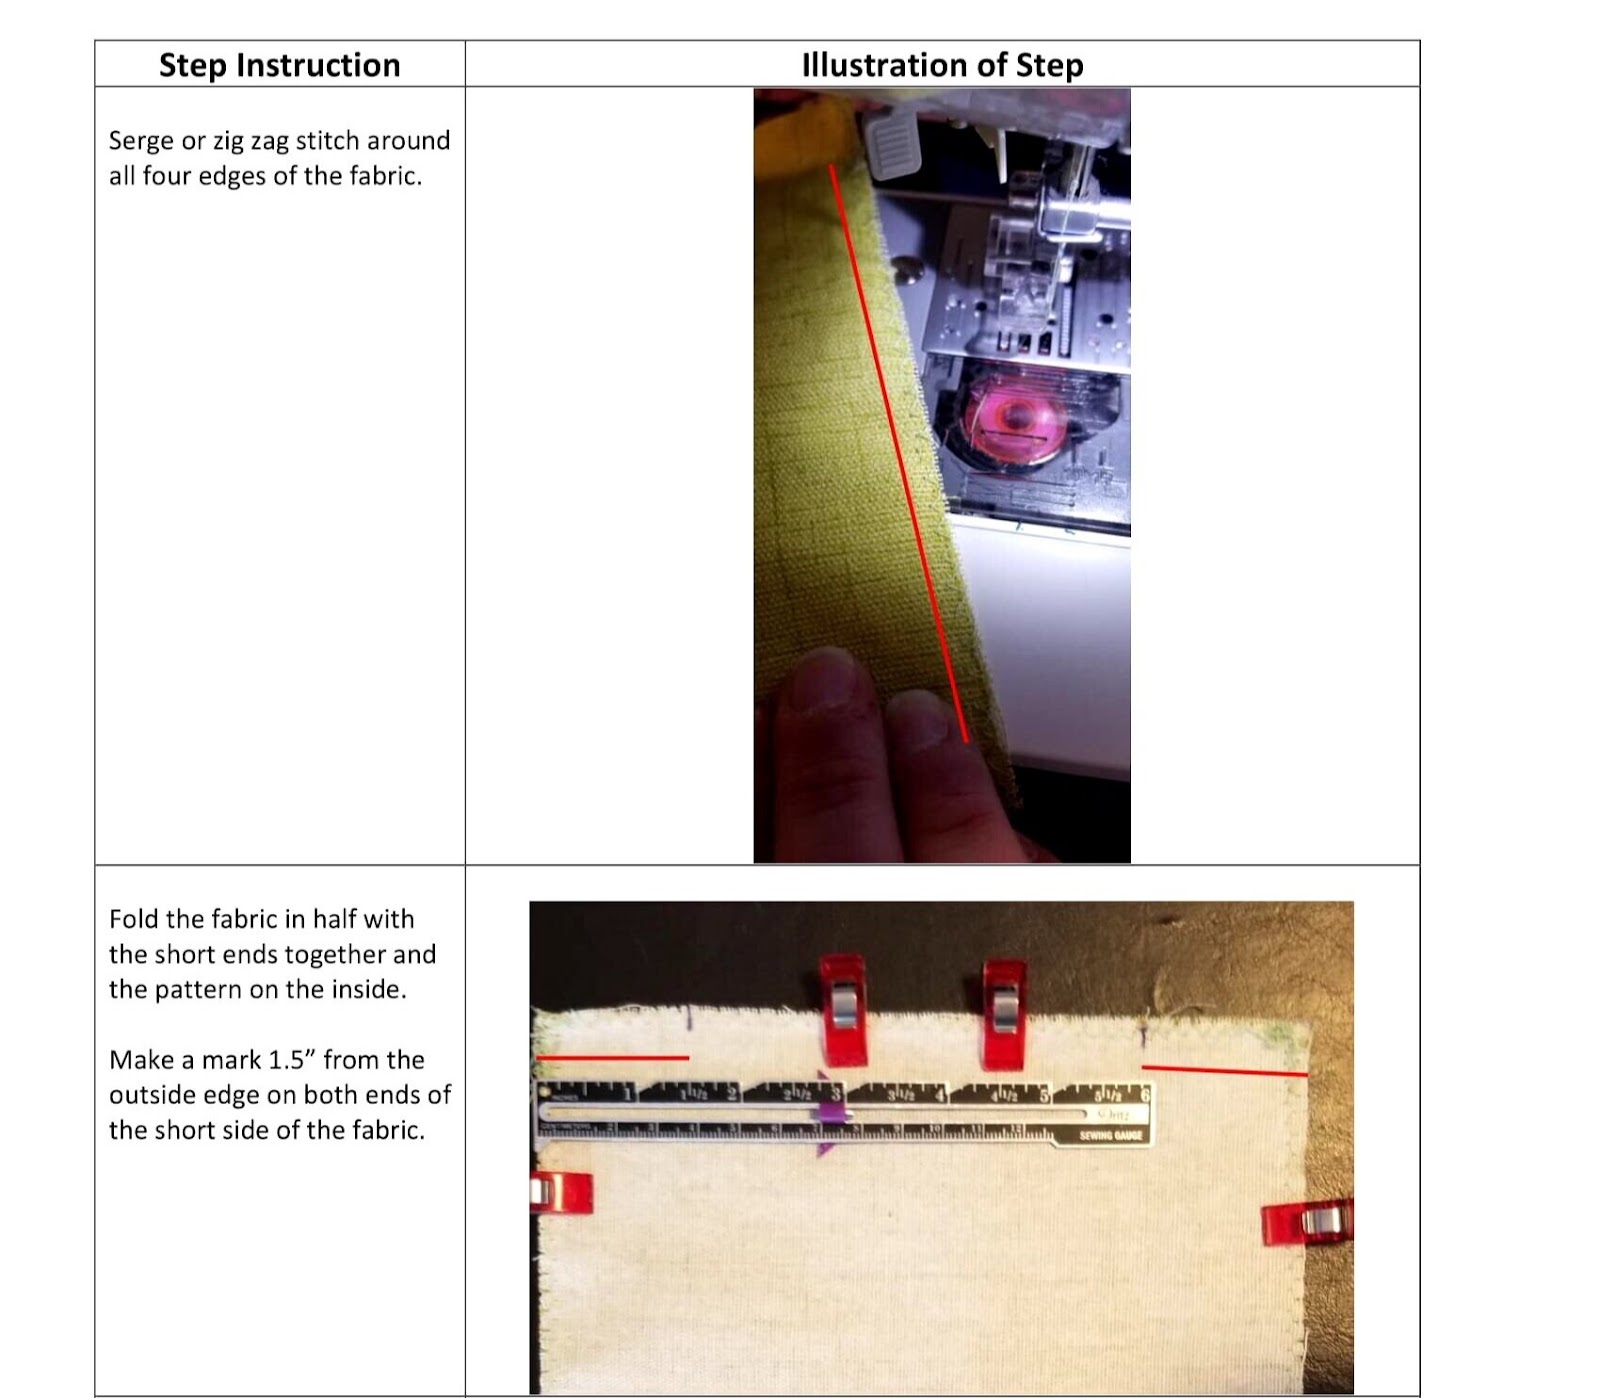 Step-by-Step%2BMask%2BInstructions%2Bwith%2BPictures-1.jpg